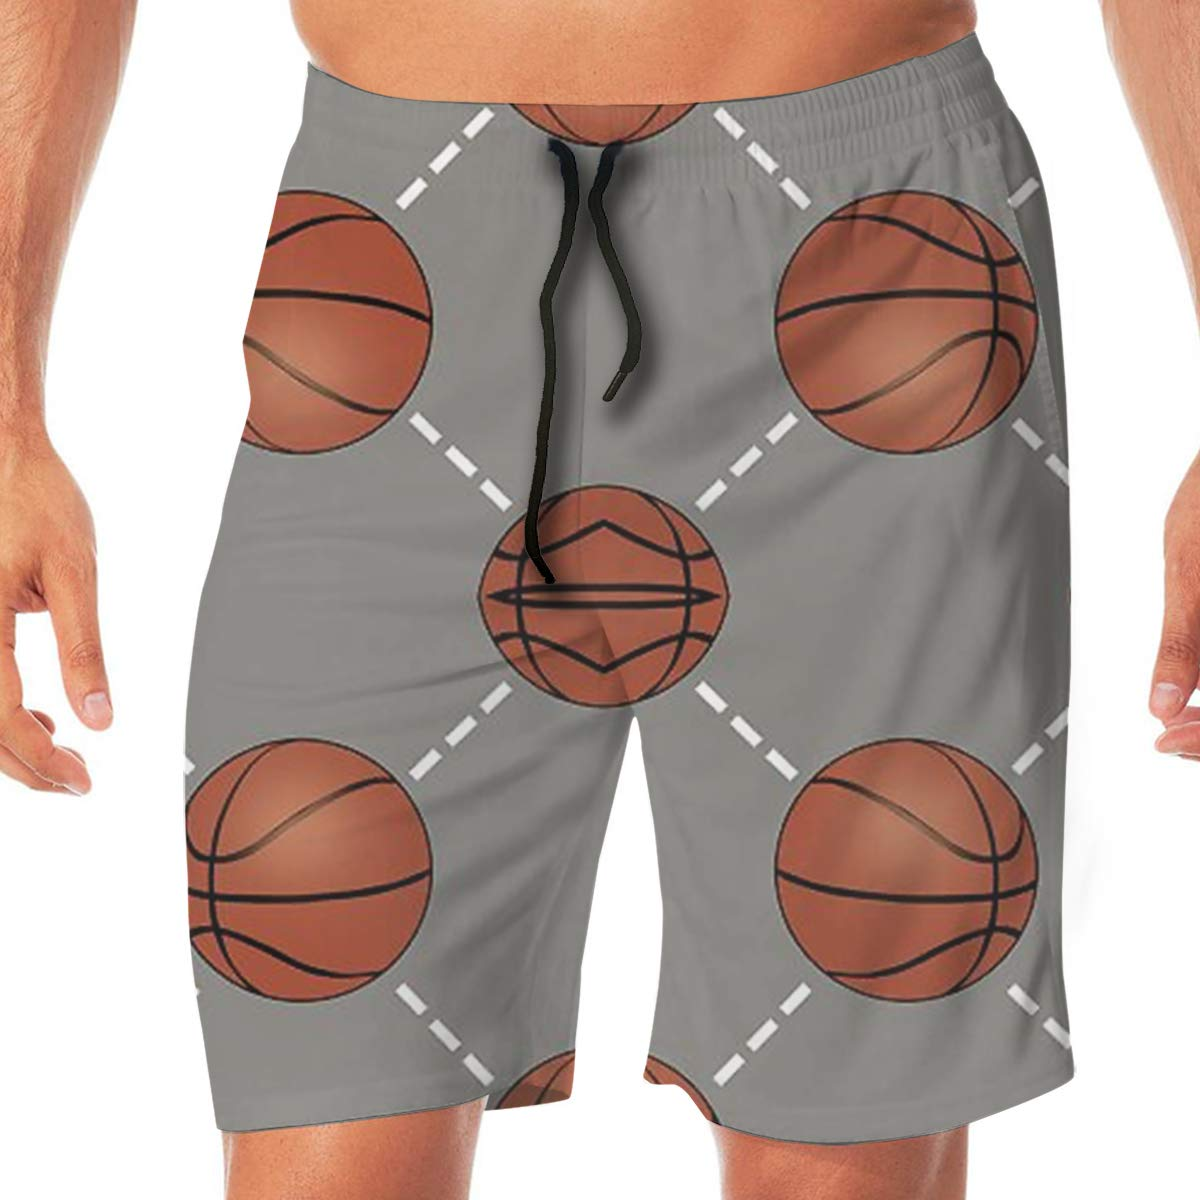 TR2YU7YT Basketball Court Casual Mens Swim Trunks Quick Dry Printed Beach Shorts Summer Boardshorts Bathing Suits with Drawstring